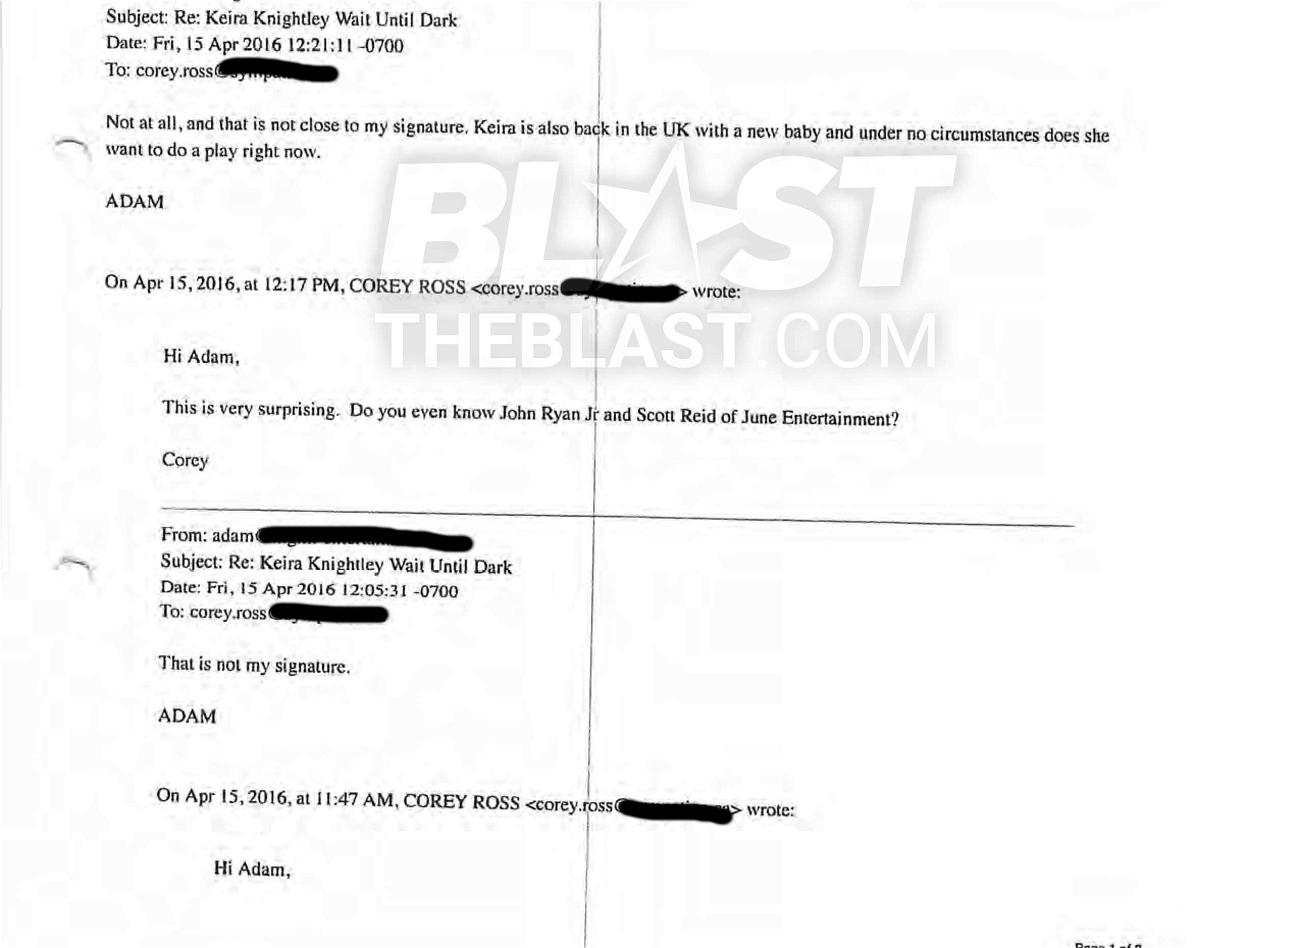 Keira Knightley's agent Adam Isaacs' email